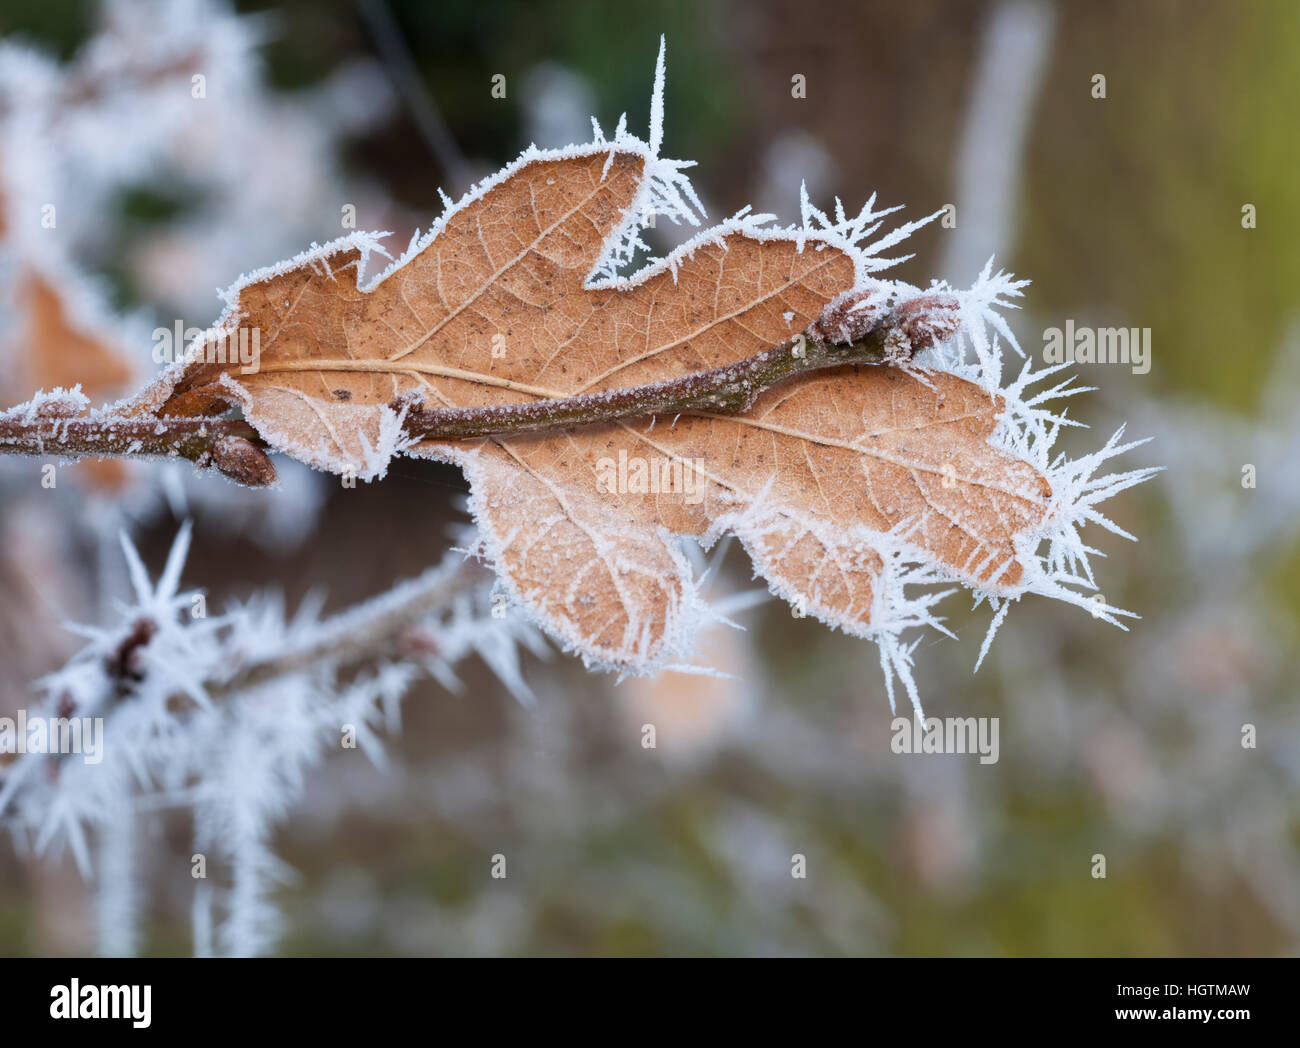 Single oak leaf and twig with new leaf buds formed coated in delicate ice crystal spikes following a hoarfrost, - Stock Image